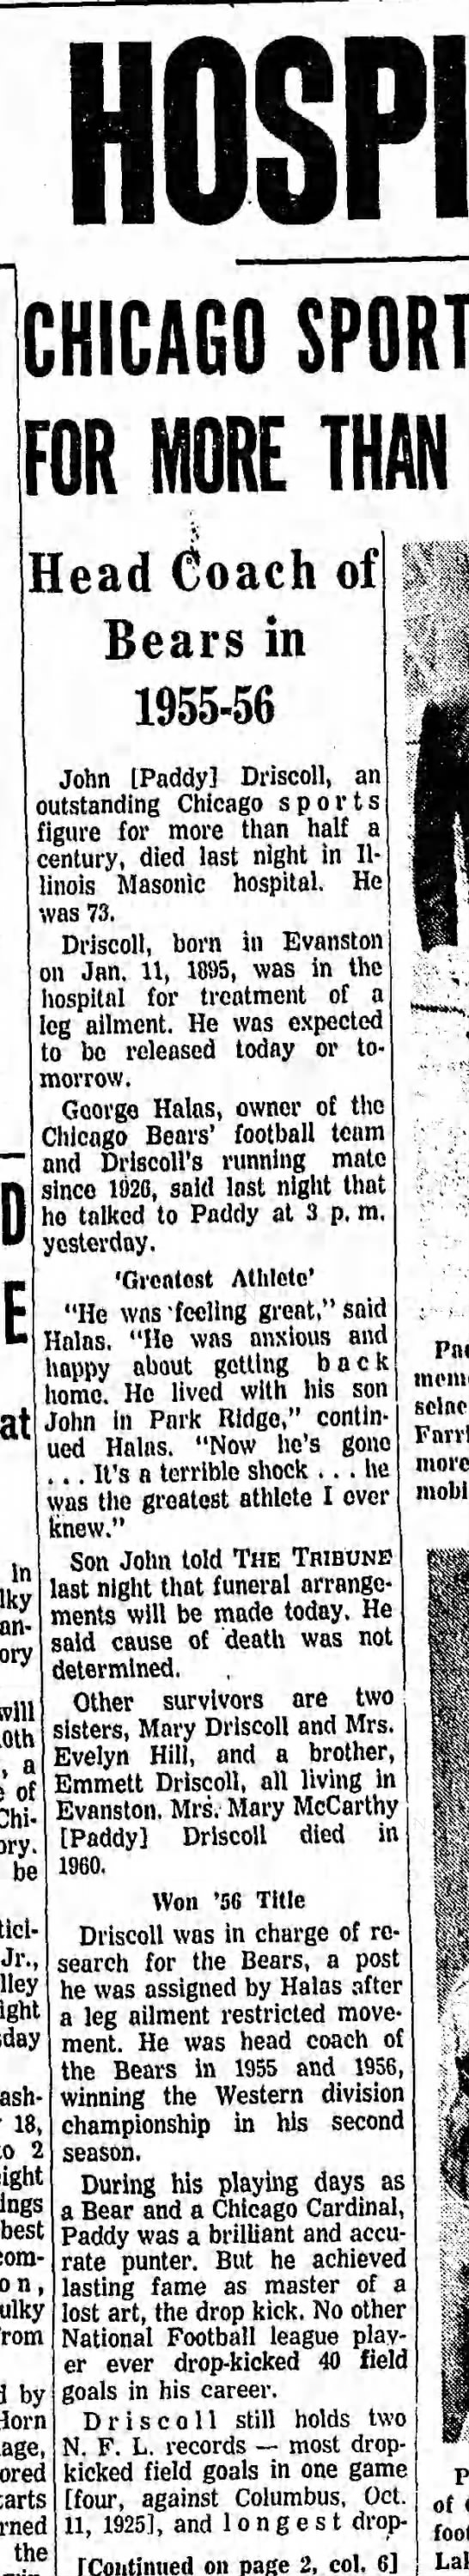 Paddy Driscoll, 73, Dies in Hospital: Chicago Sports Figure For More Than 50 Years -